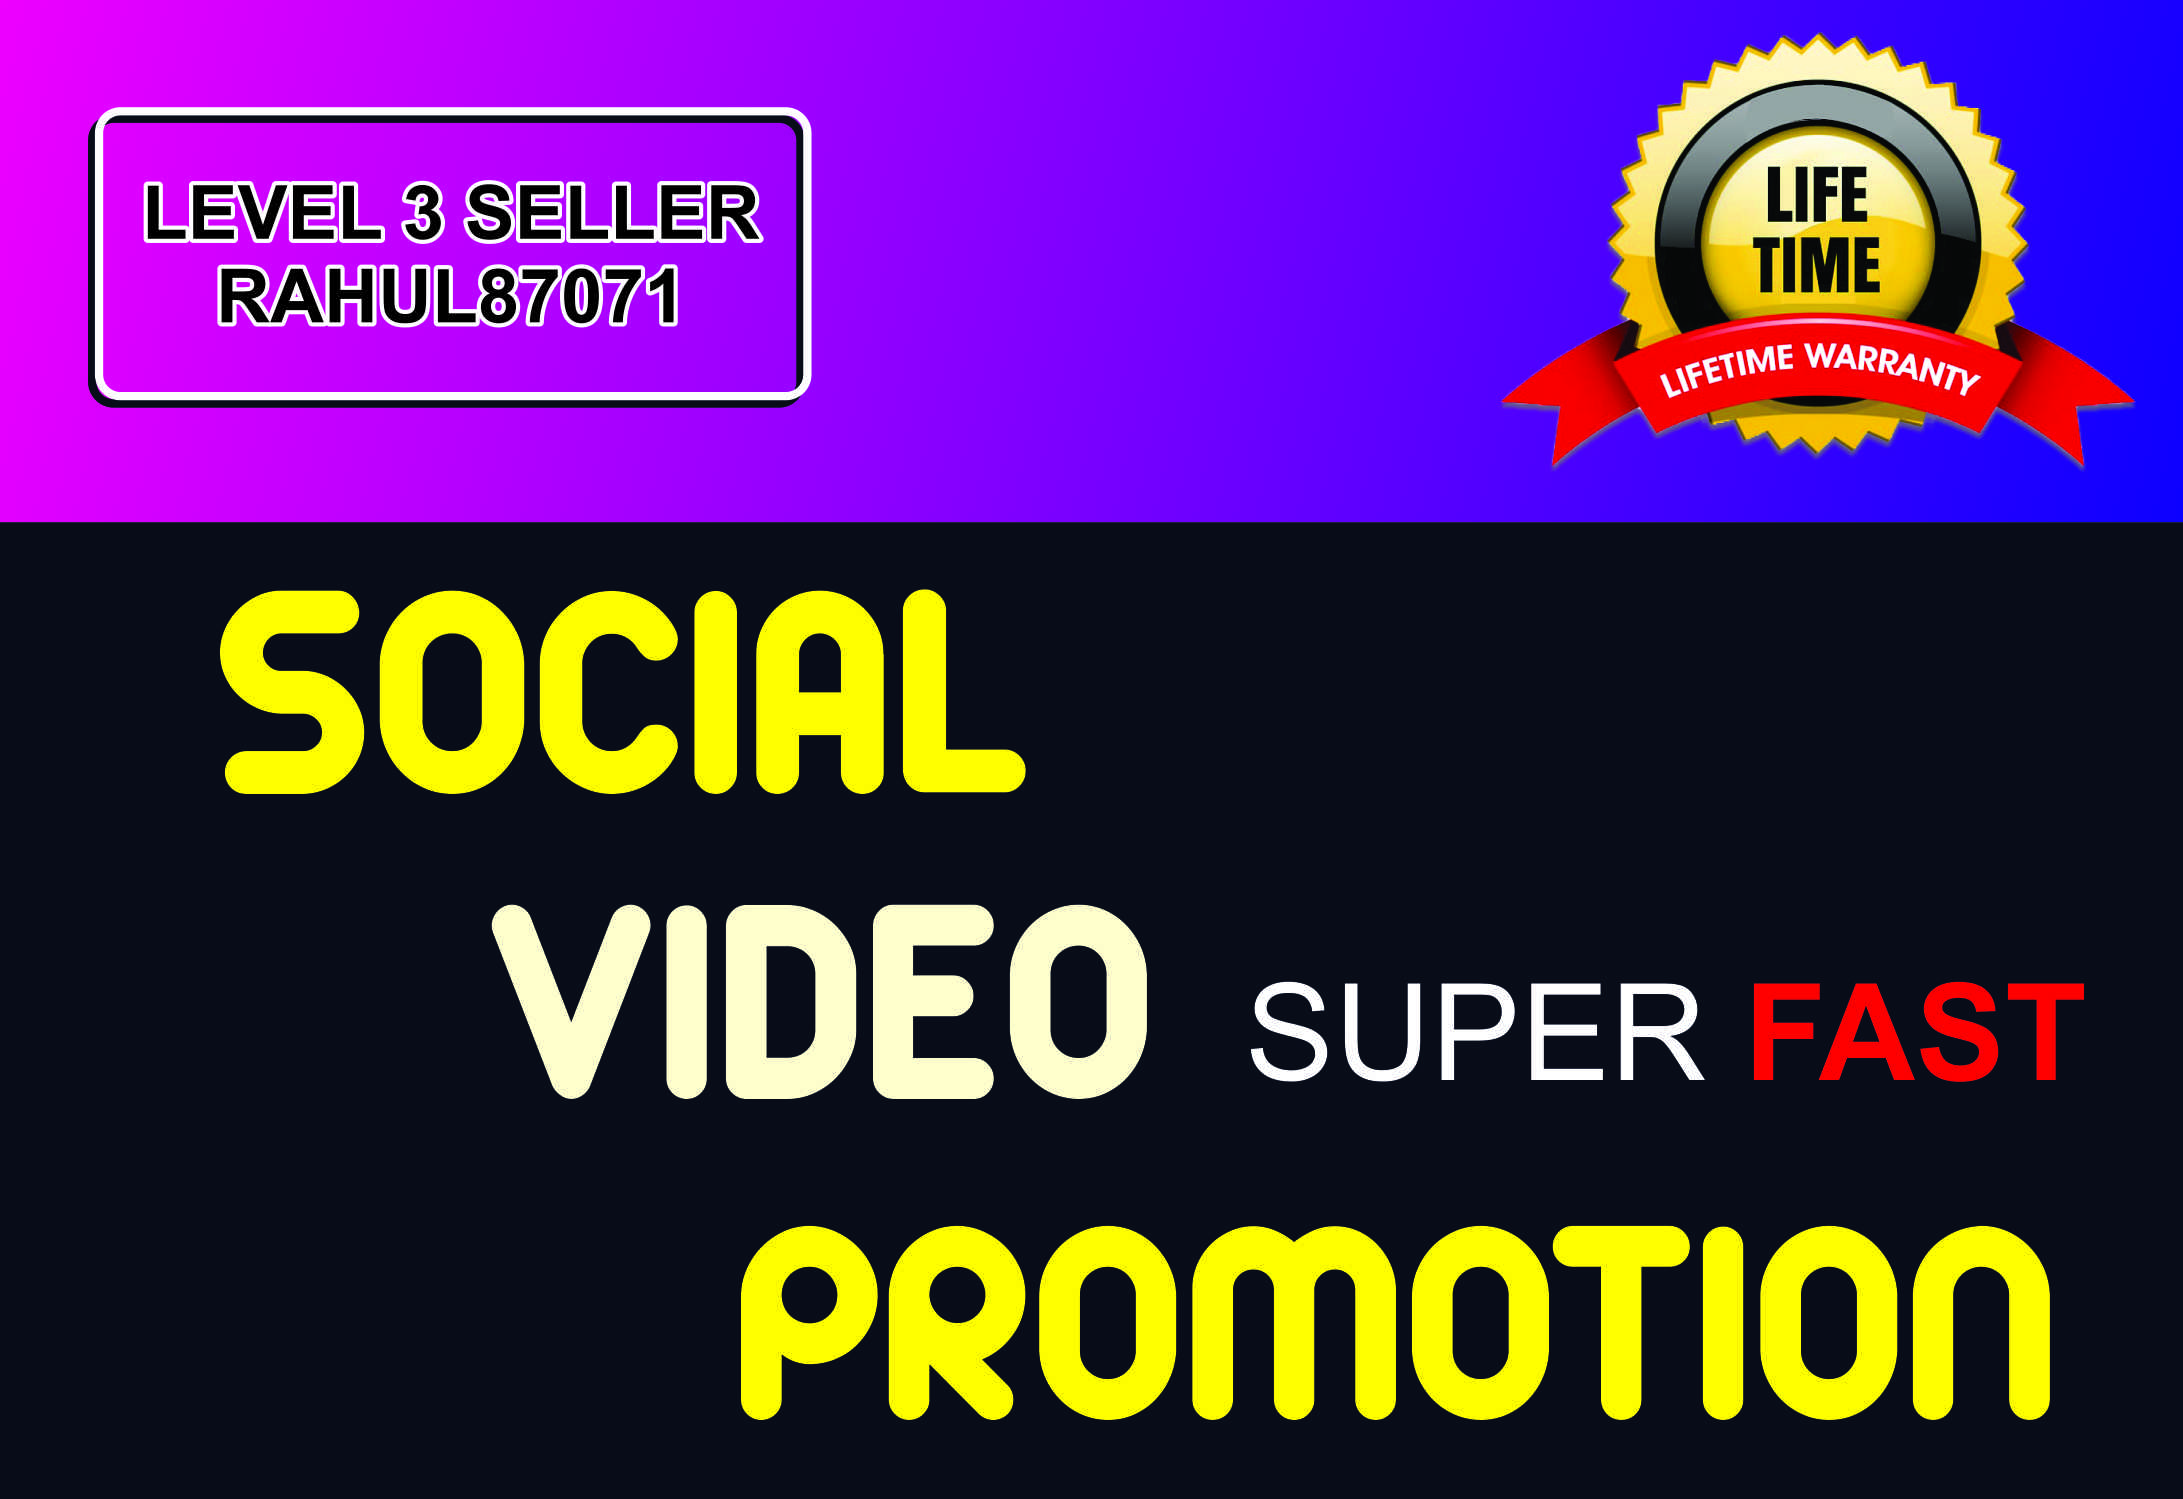 SUPER FAST HQ SOCIAL VIDEO PROMOTION AND Lifetime Guaranteed